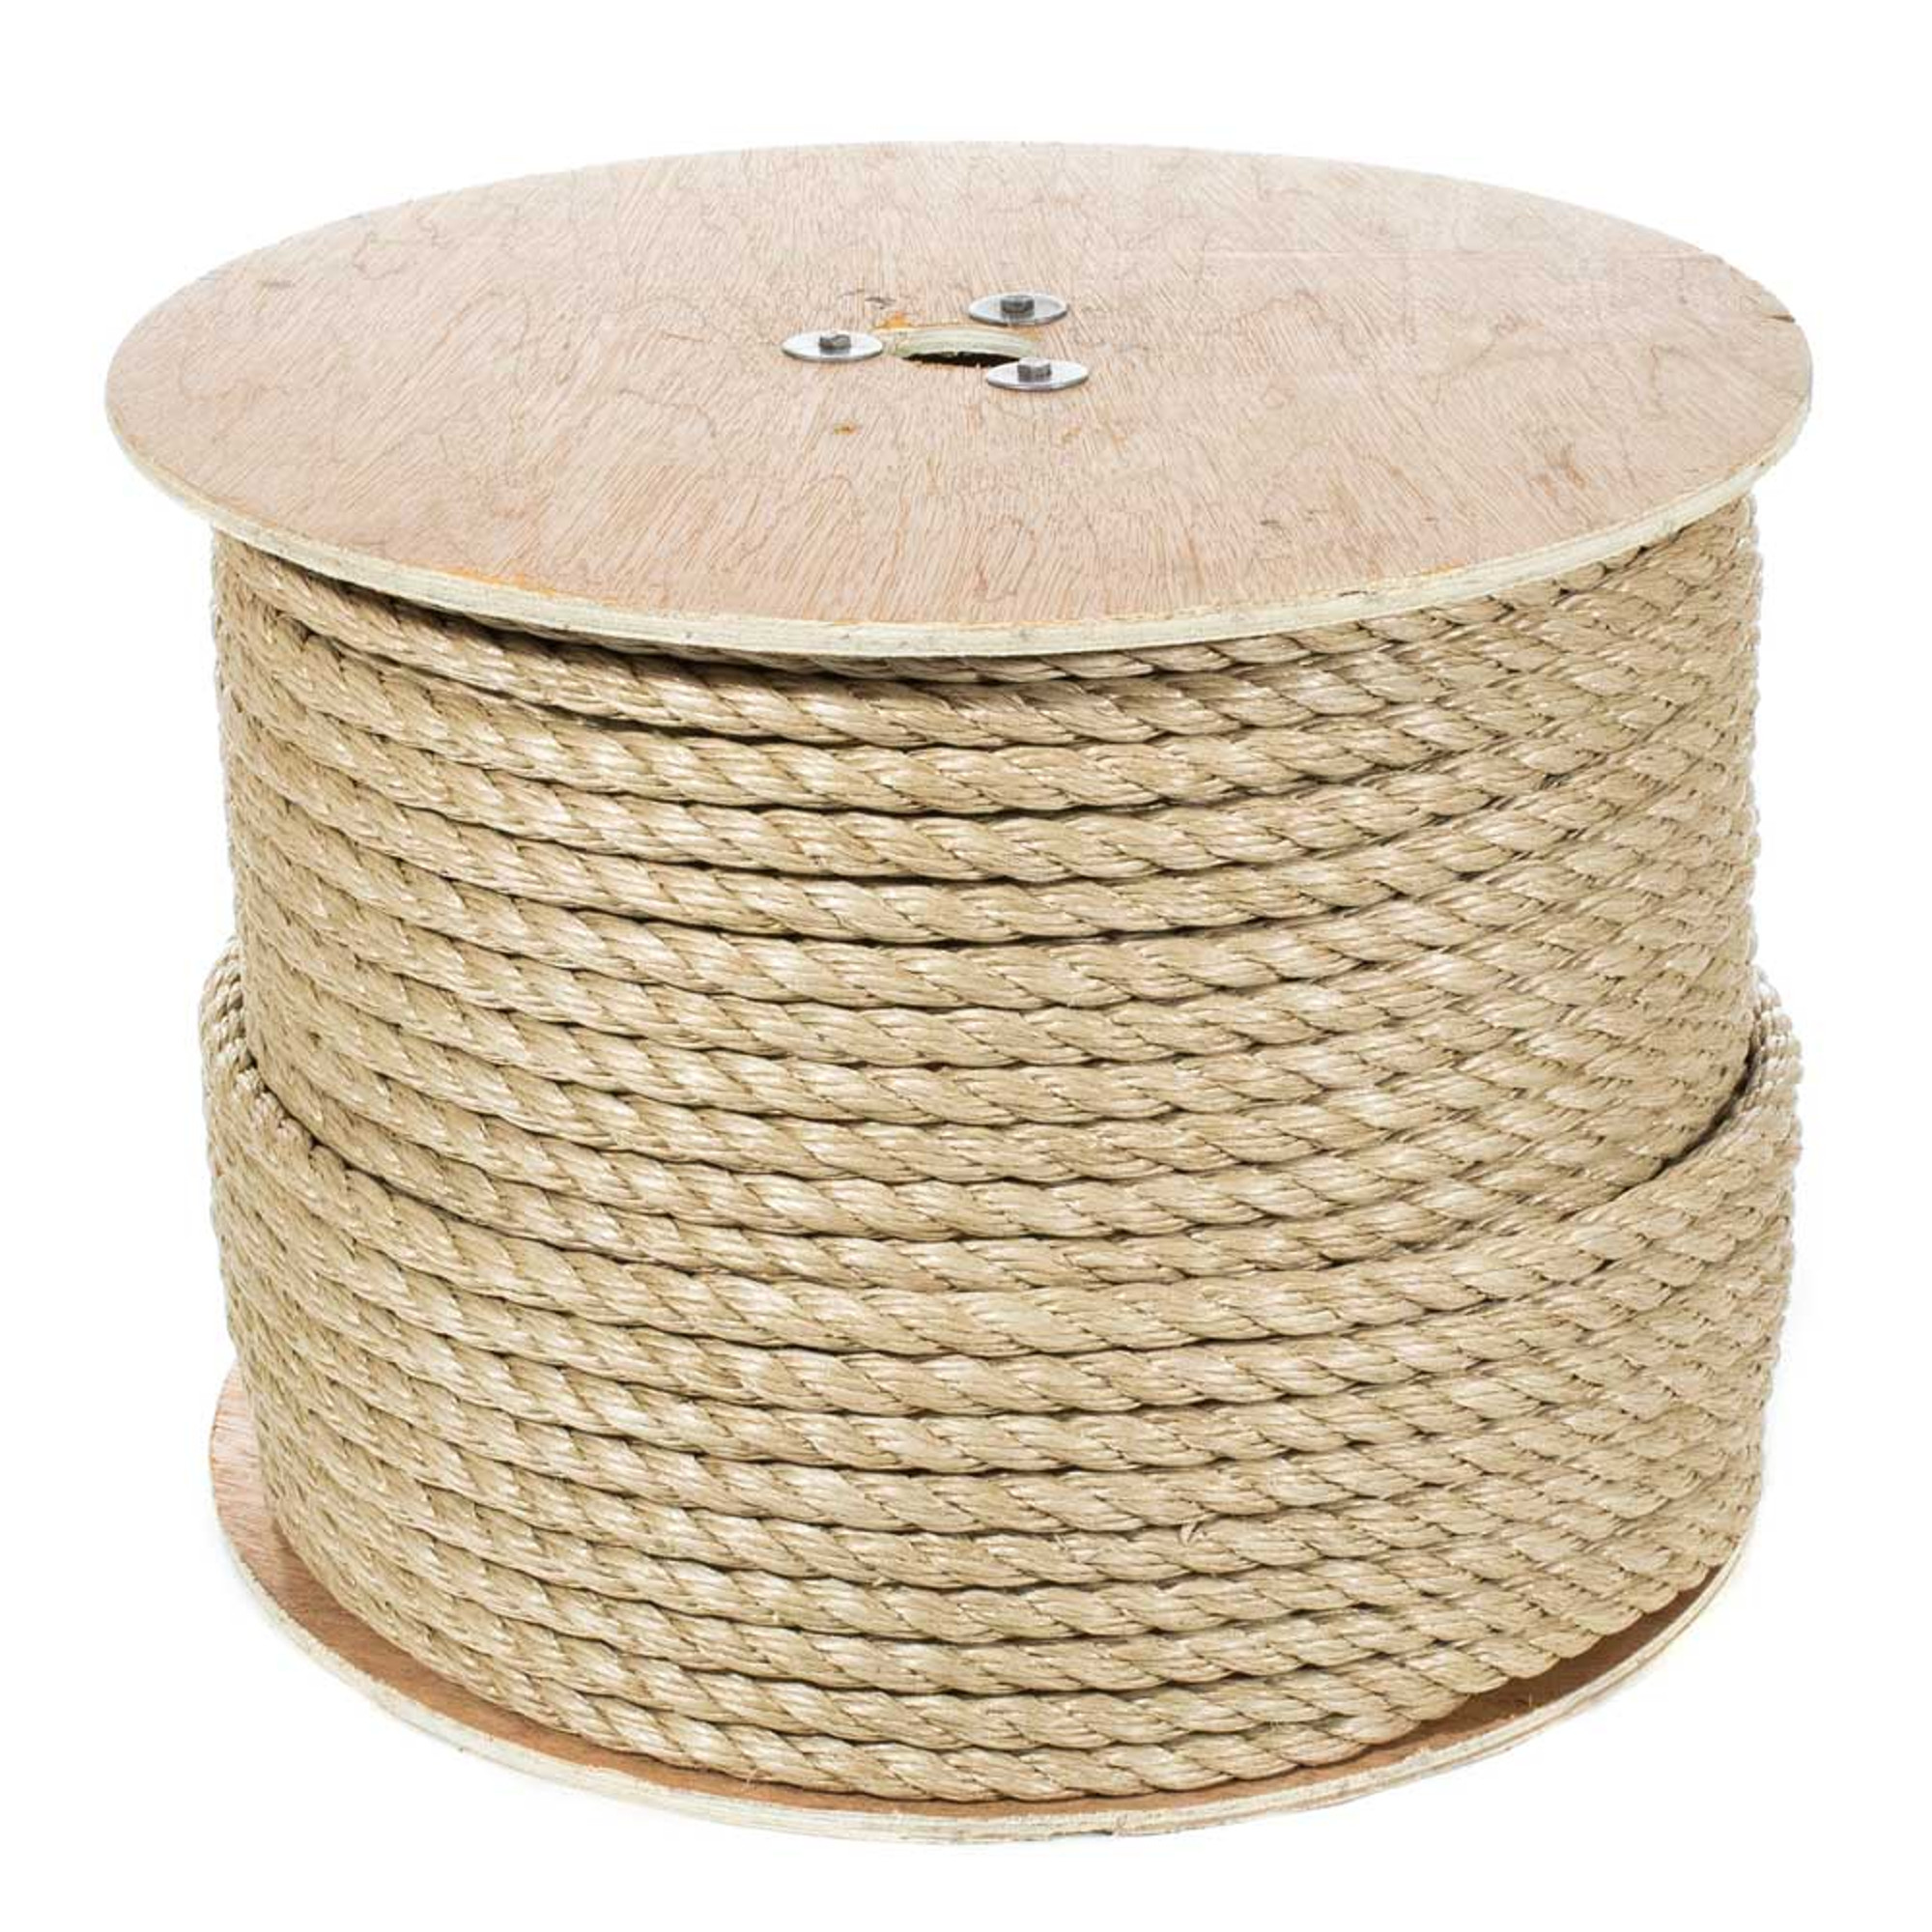 Several Lengths PARACORD PLANET 3//4 inch 5//16 inch 2 inch Sizes 3//8 inch 1//2 inch 5//8 inch 1-1//4 inch 1-1//2 inch 1//4 inch 3 Strand Twisted ProManila Polypro Rope